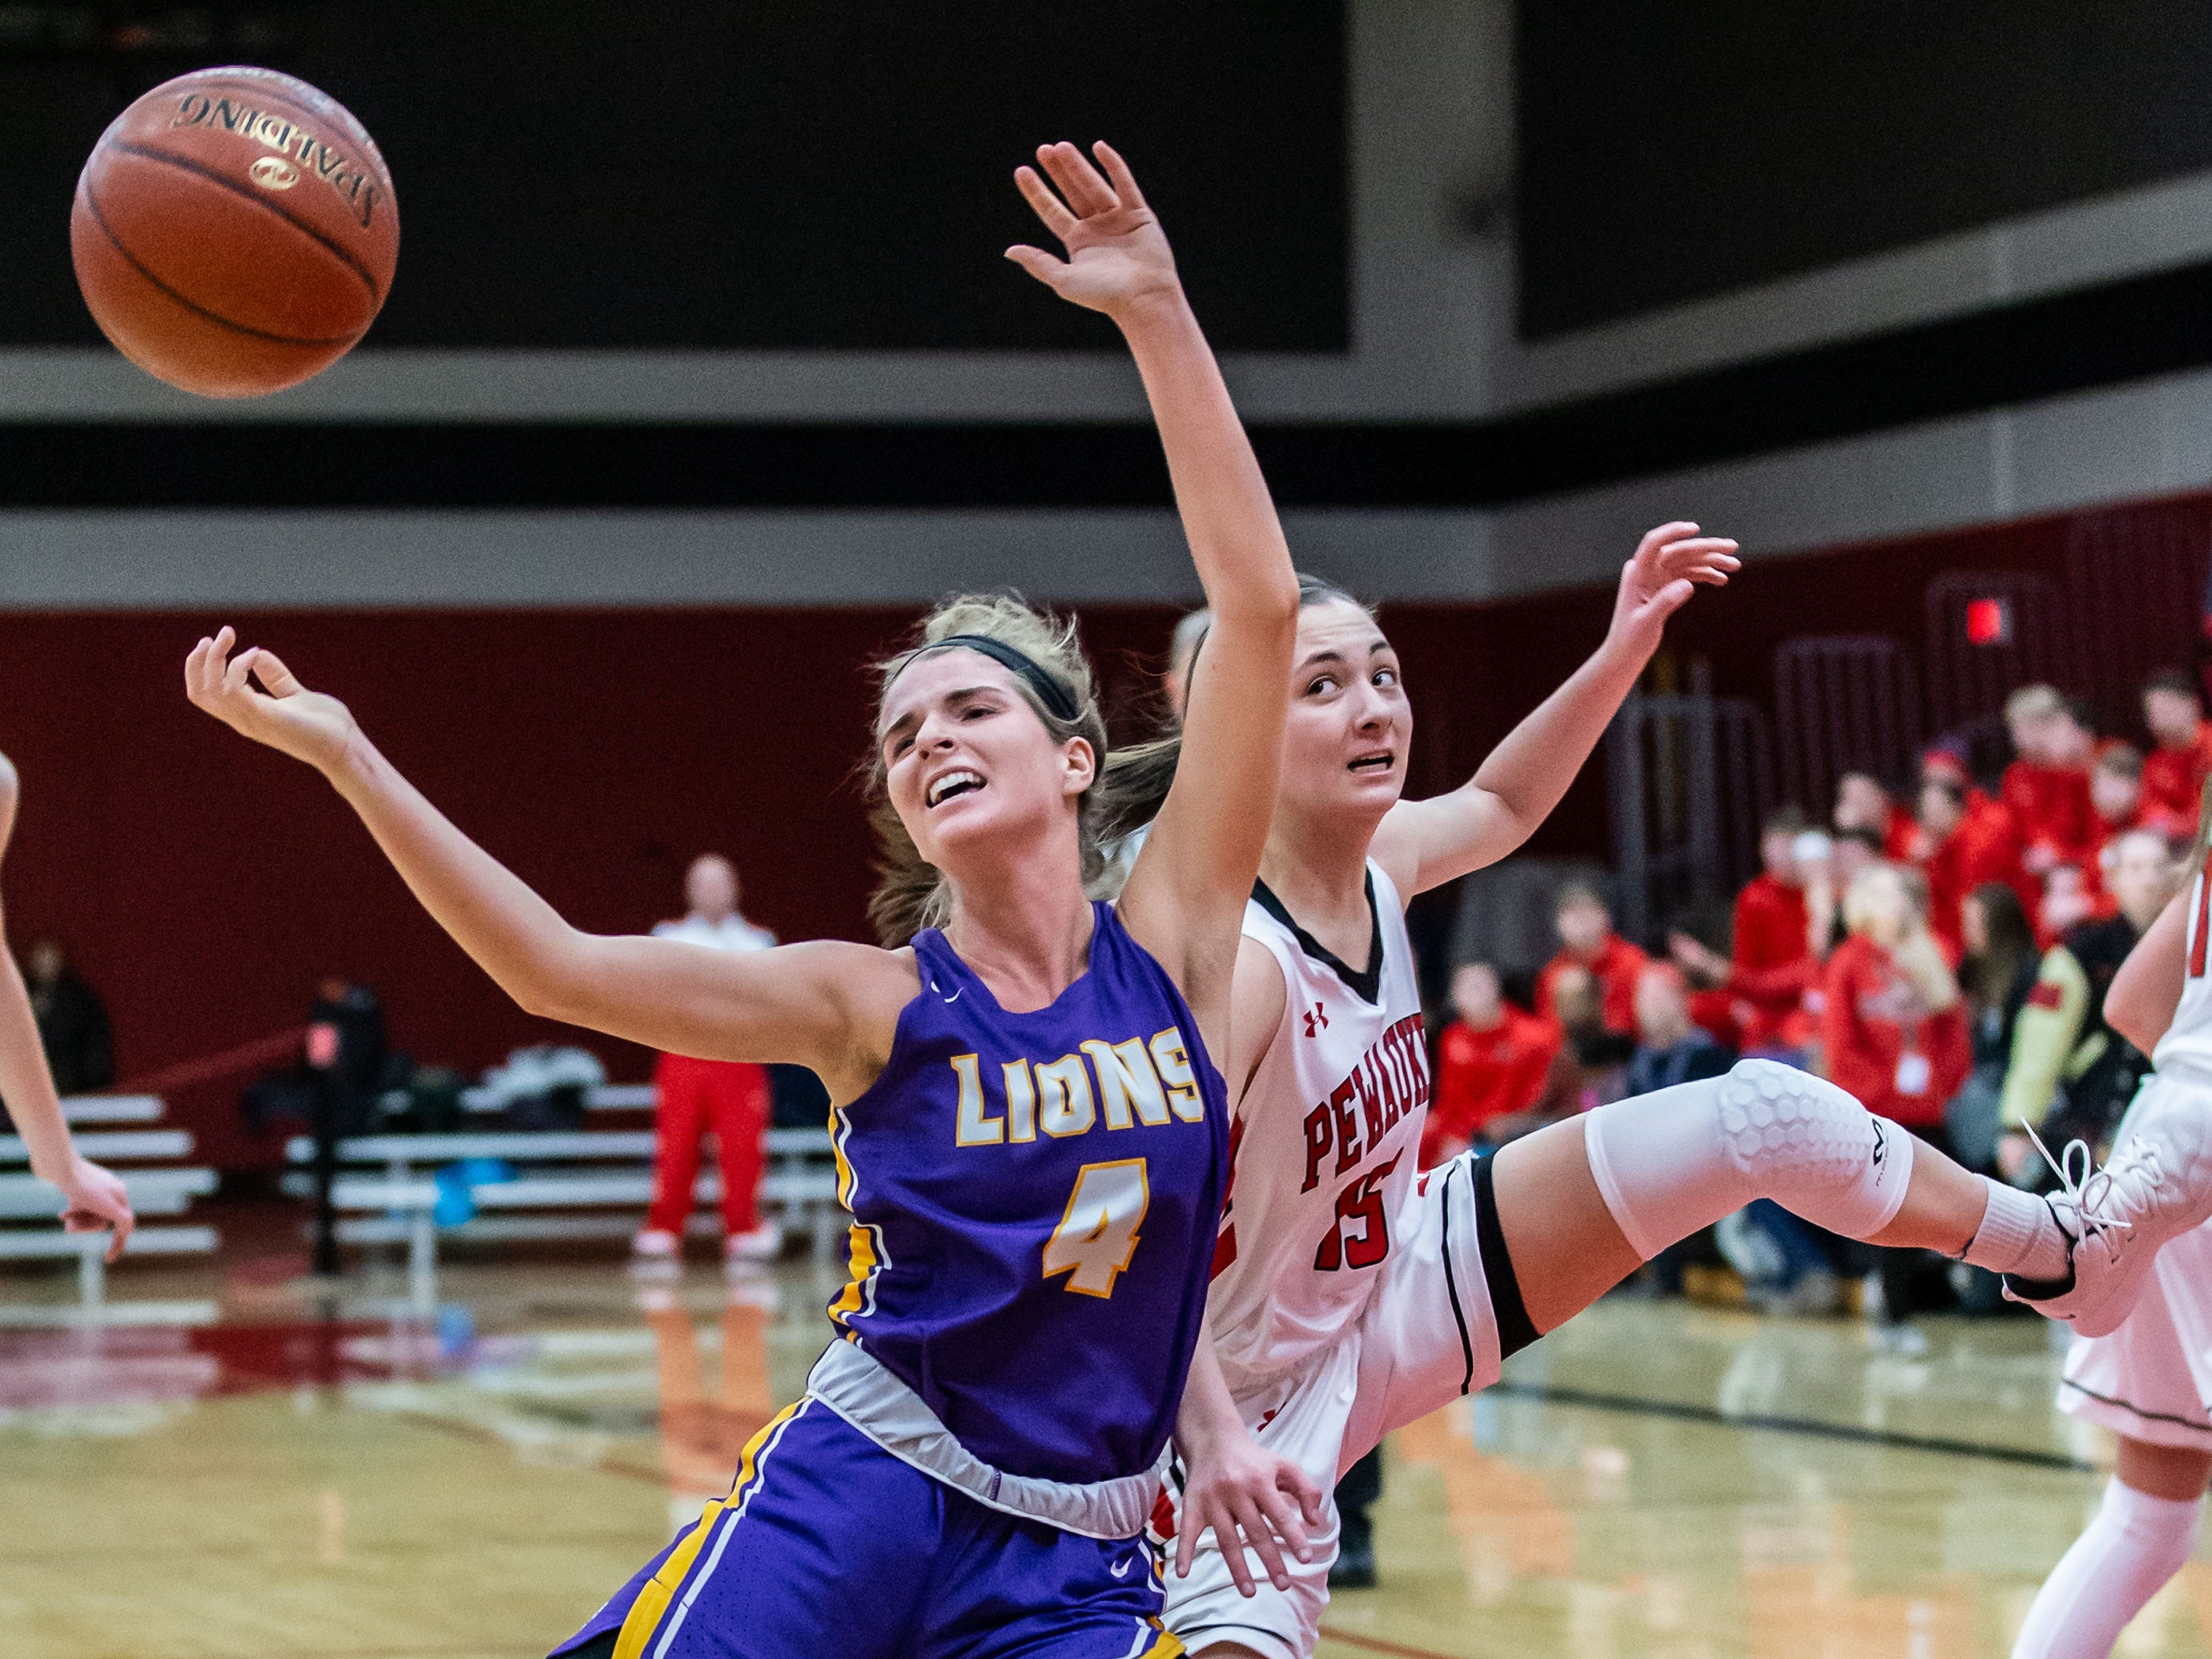 New Berlin Eisenhower's Julia Hintz (4) battles for possession under the hoop with Pewaukee's Kennedy Osterman (15) during the game at Pewaukee on Friday, Jan. 25, 2019.